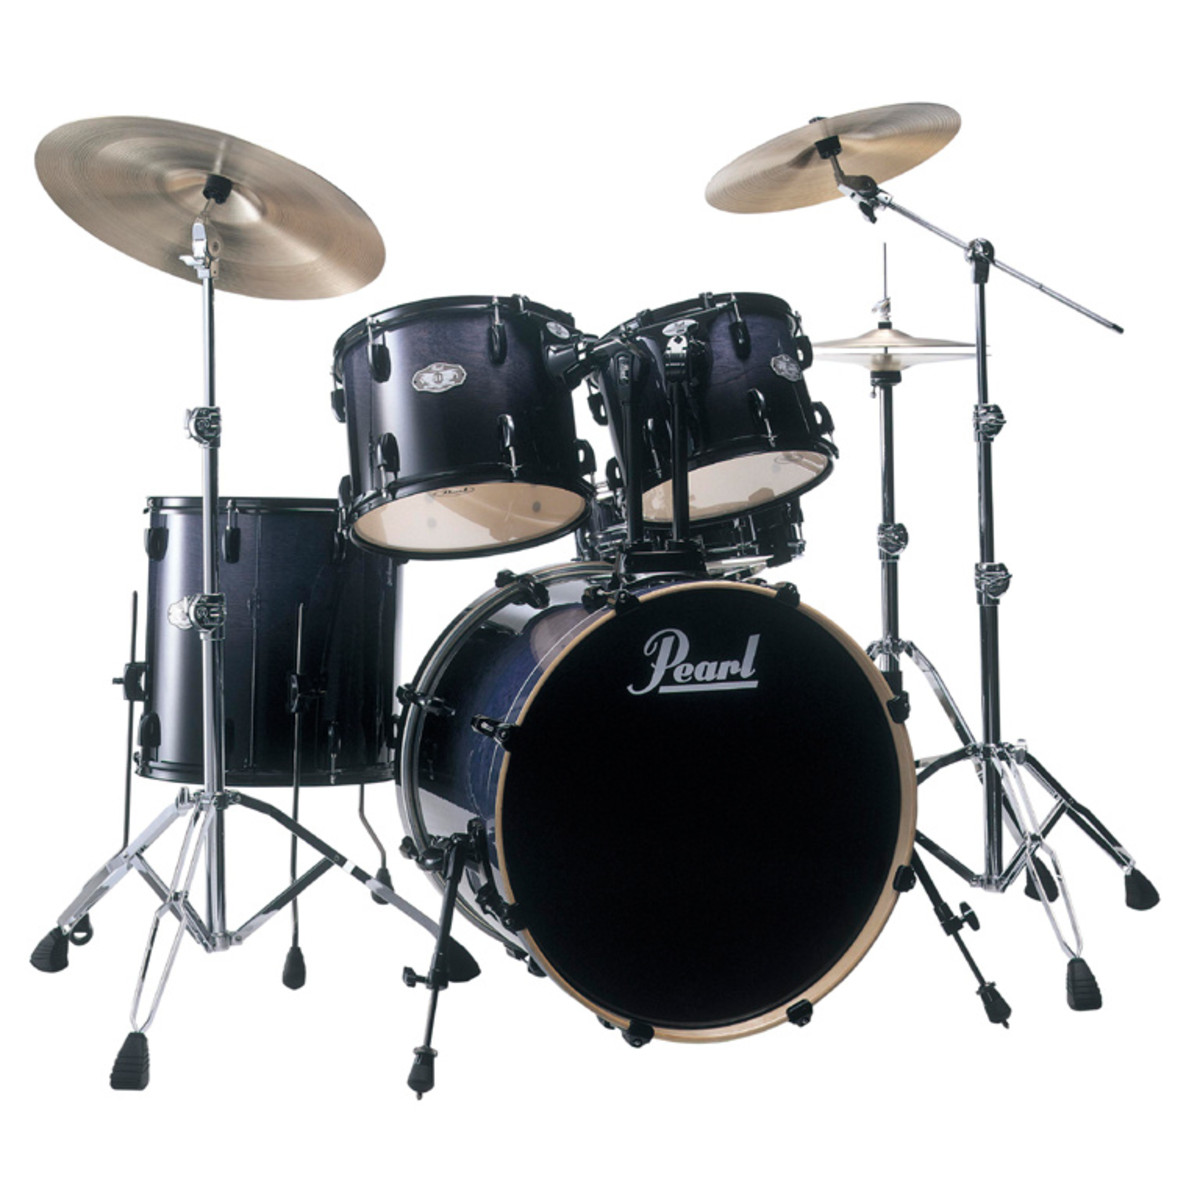 disc pearl vision vbx birch rock kit in concord fade at gear4music. Black Bedroom Furniture Sets. Home Design Ideas